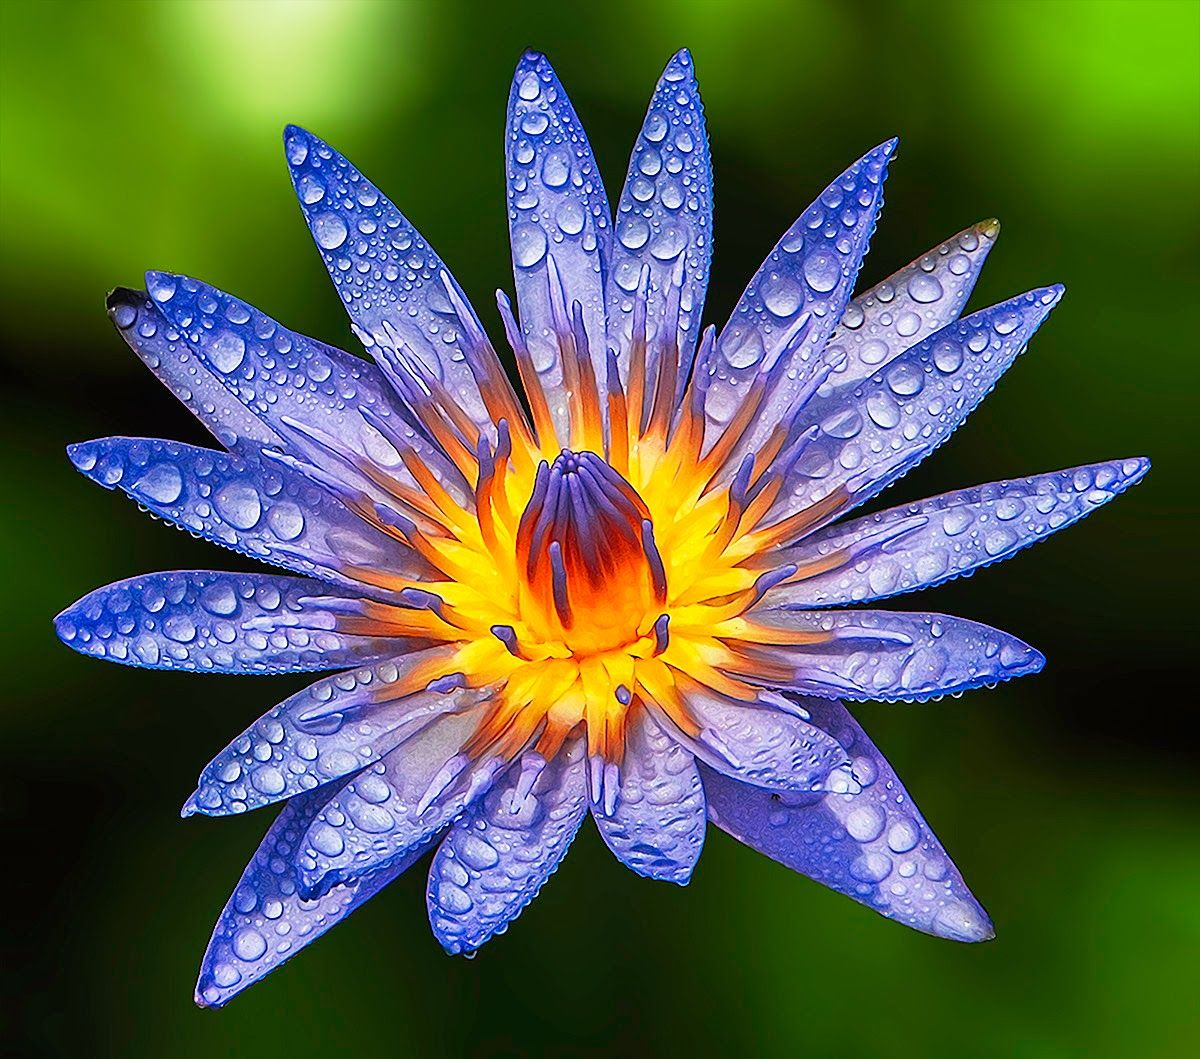 Nymphaea caerulea also known as the blue egyptian water lily or nymphaea caerulea also known as the blue egyptian water lily or sacred blue lily by her jr salvan photography via dubie bacinos photo on google izmirmasajfo